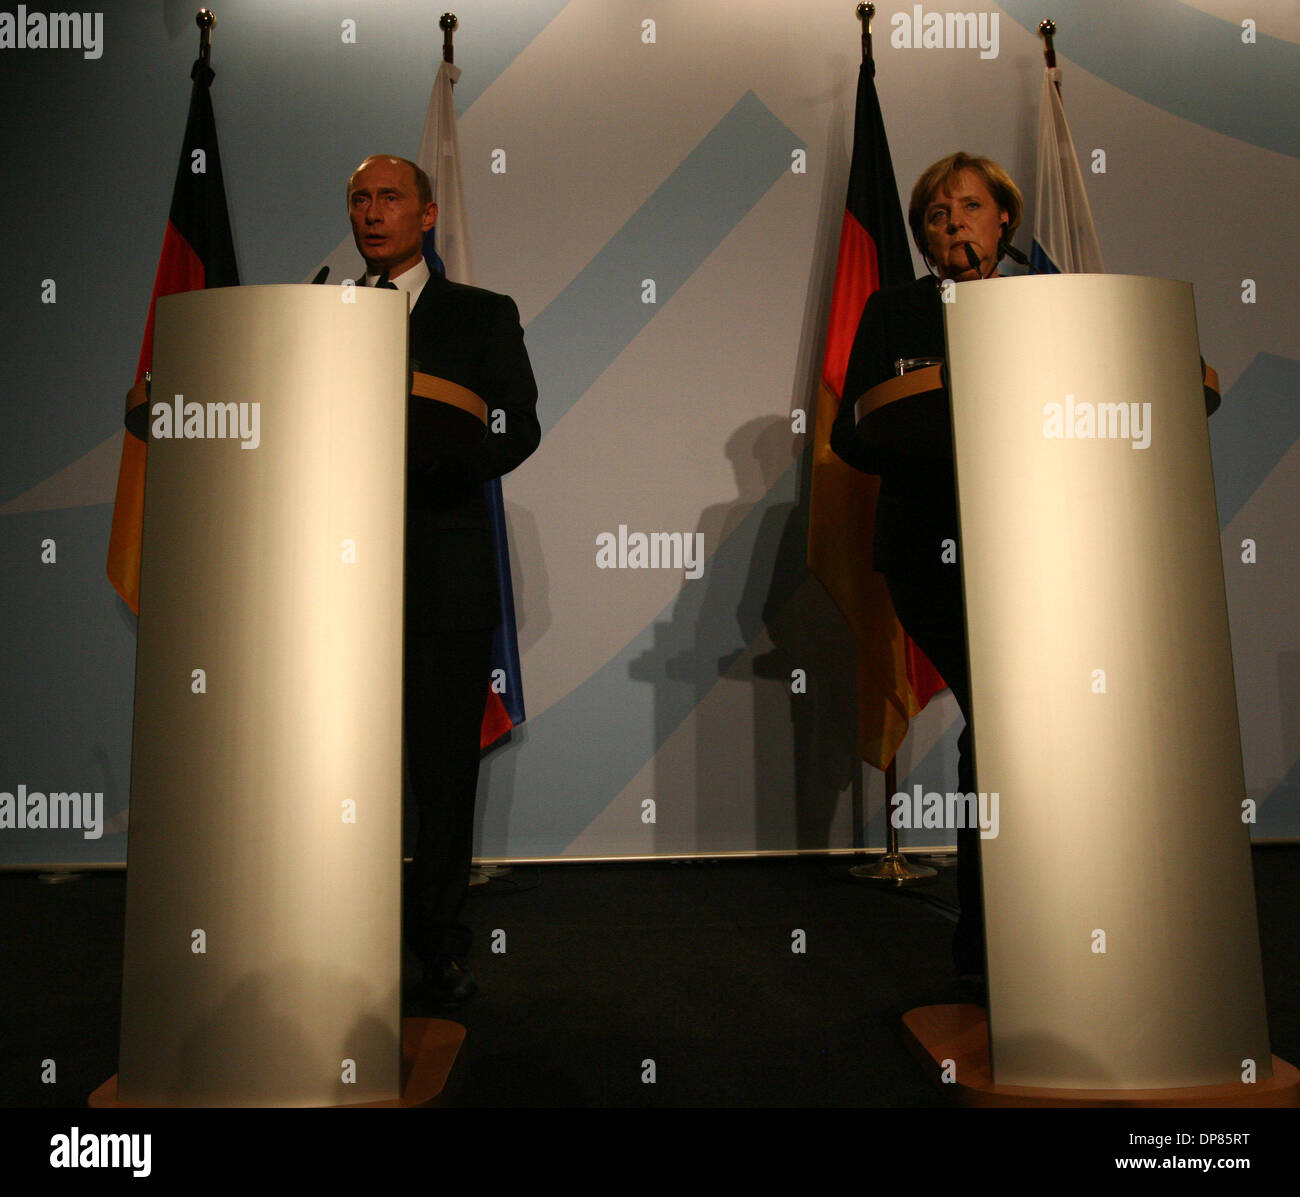 Vladimir Putin and German Chancellor Angela Merkel appeared in Dresden on Tuesday, October 10, 2006.Putin arrived in Dresden, the east German city where he served as a KGB agent in the 1980s, for talks with Merkel amid German concerns about the reliability of partnership with Russia.      (Credit Image: © PhotoXpress/ZUMA Press) RESTRICTIONS: North and South America Rights ONLY! - Stock Image